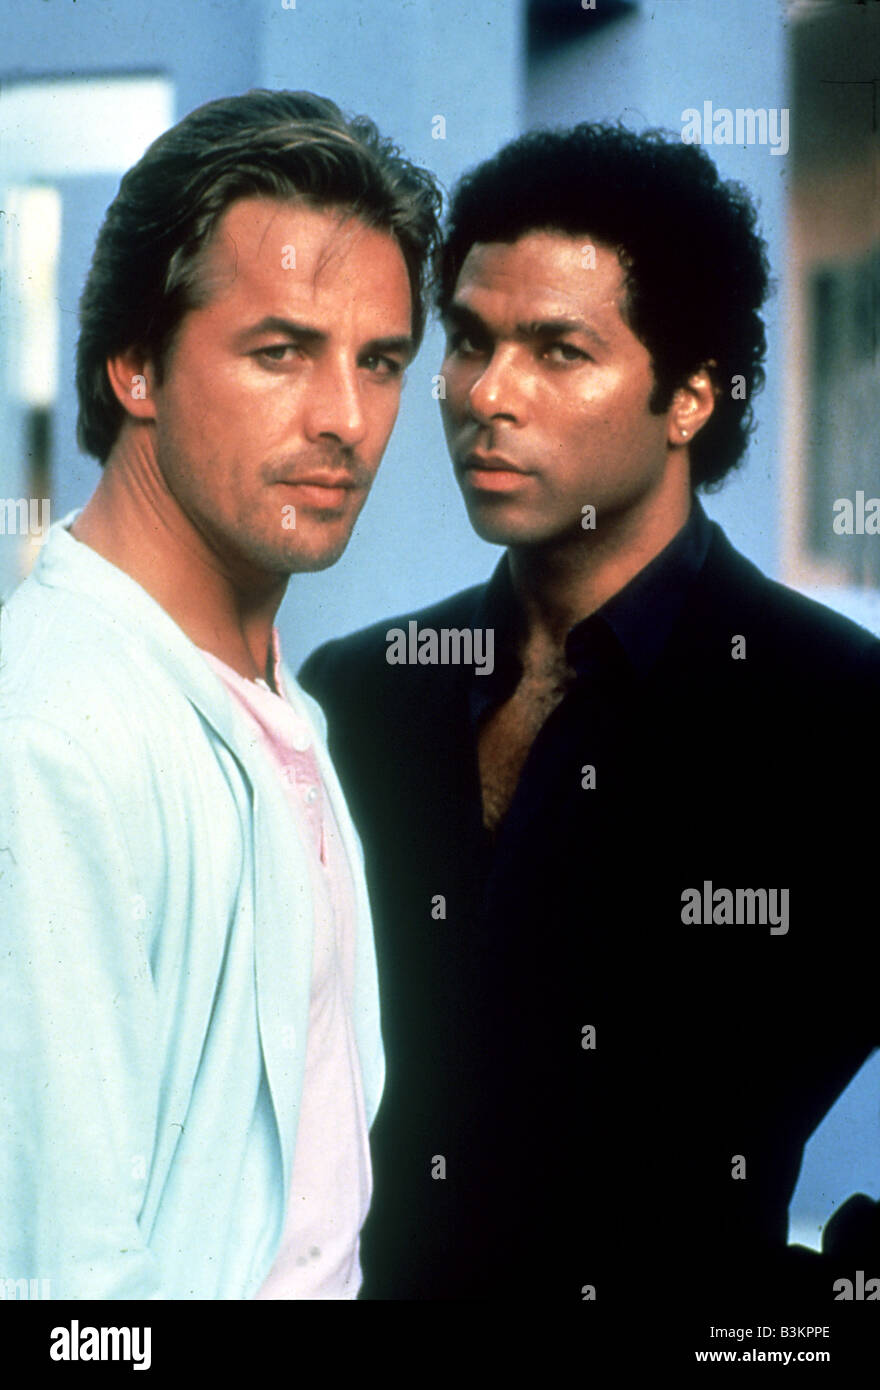 http://c8.alamy.com/comp/B3KPPE/miami-vice-us-tv-series-with-don-johnson-at-left-and-philip-michael-B3KPPE.jpg